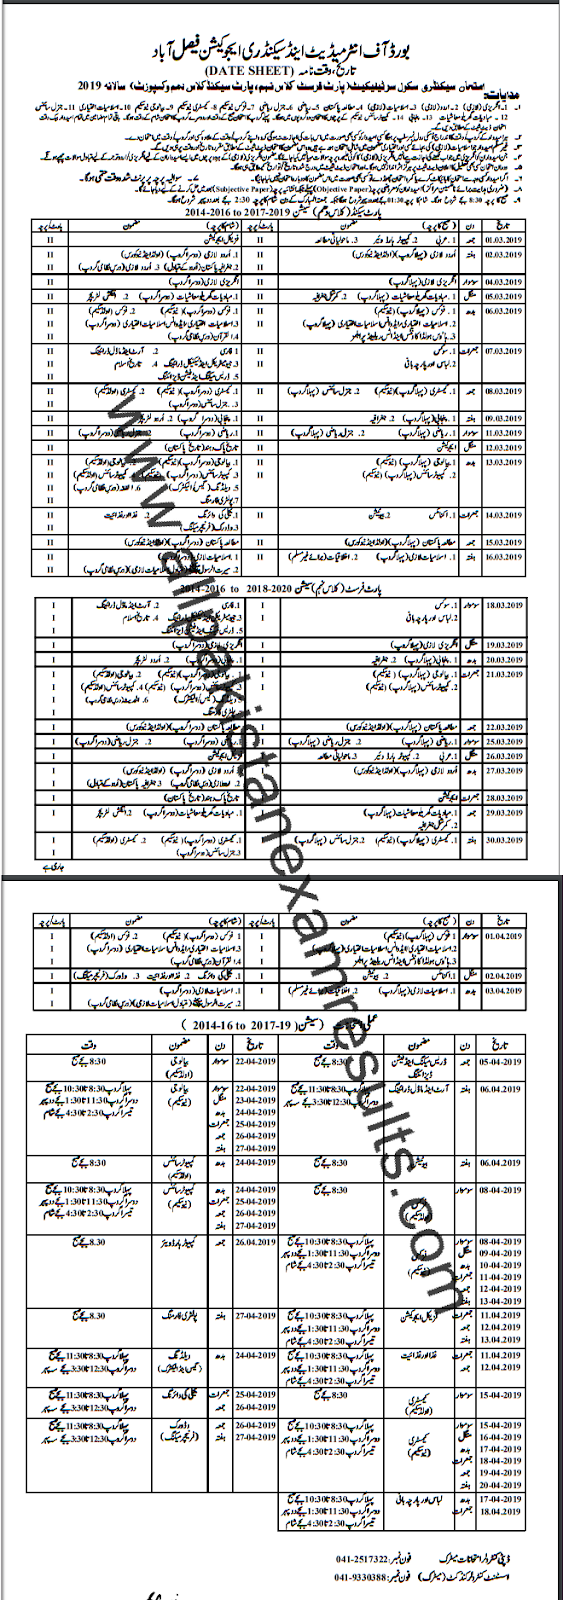 BISE Faisalabad 10th Class Date Sheet 2019